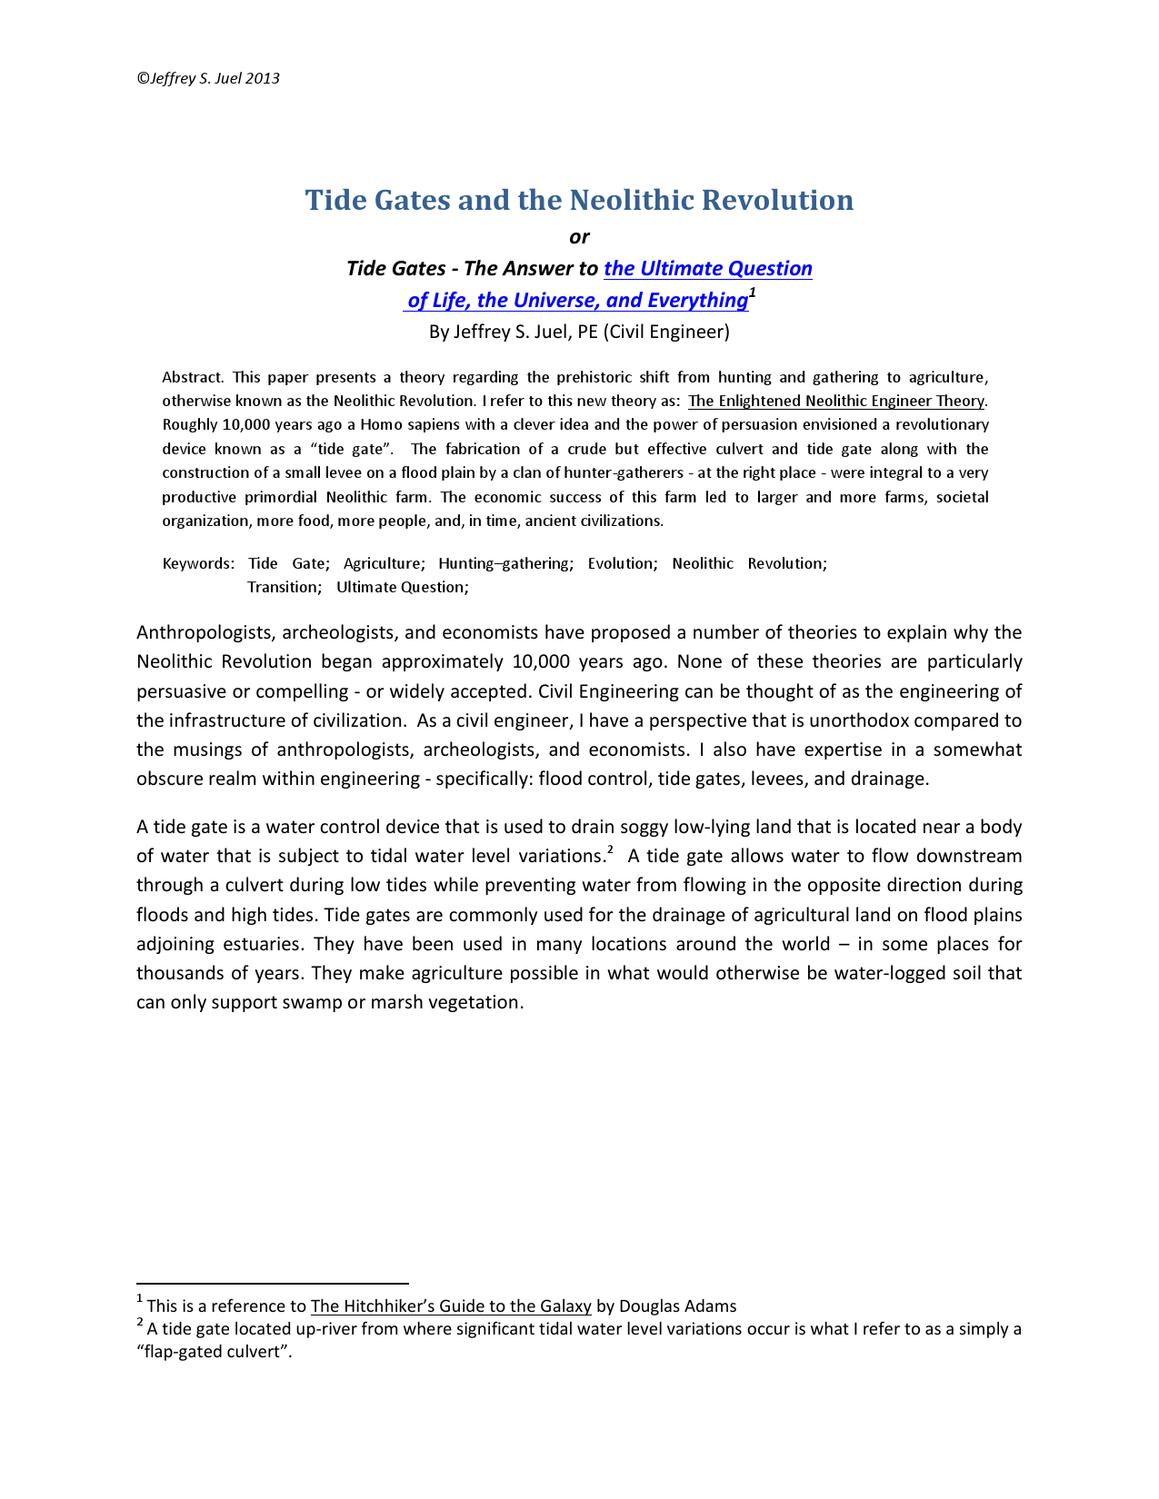 neolithic revolution essay how to write thematic essays  juel tide gates tide blog seattle wa neolithic revolution 3 years ago jueltidegates revolution essay